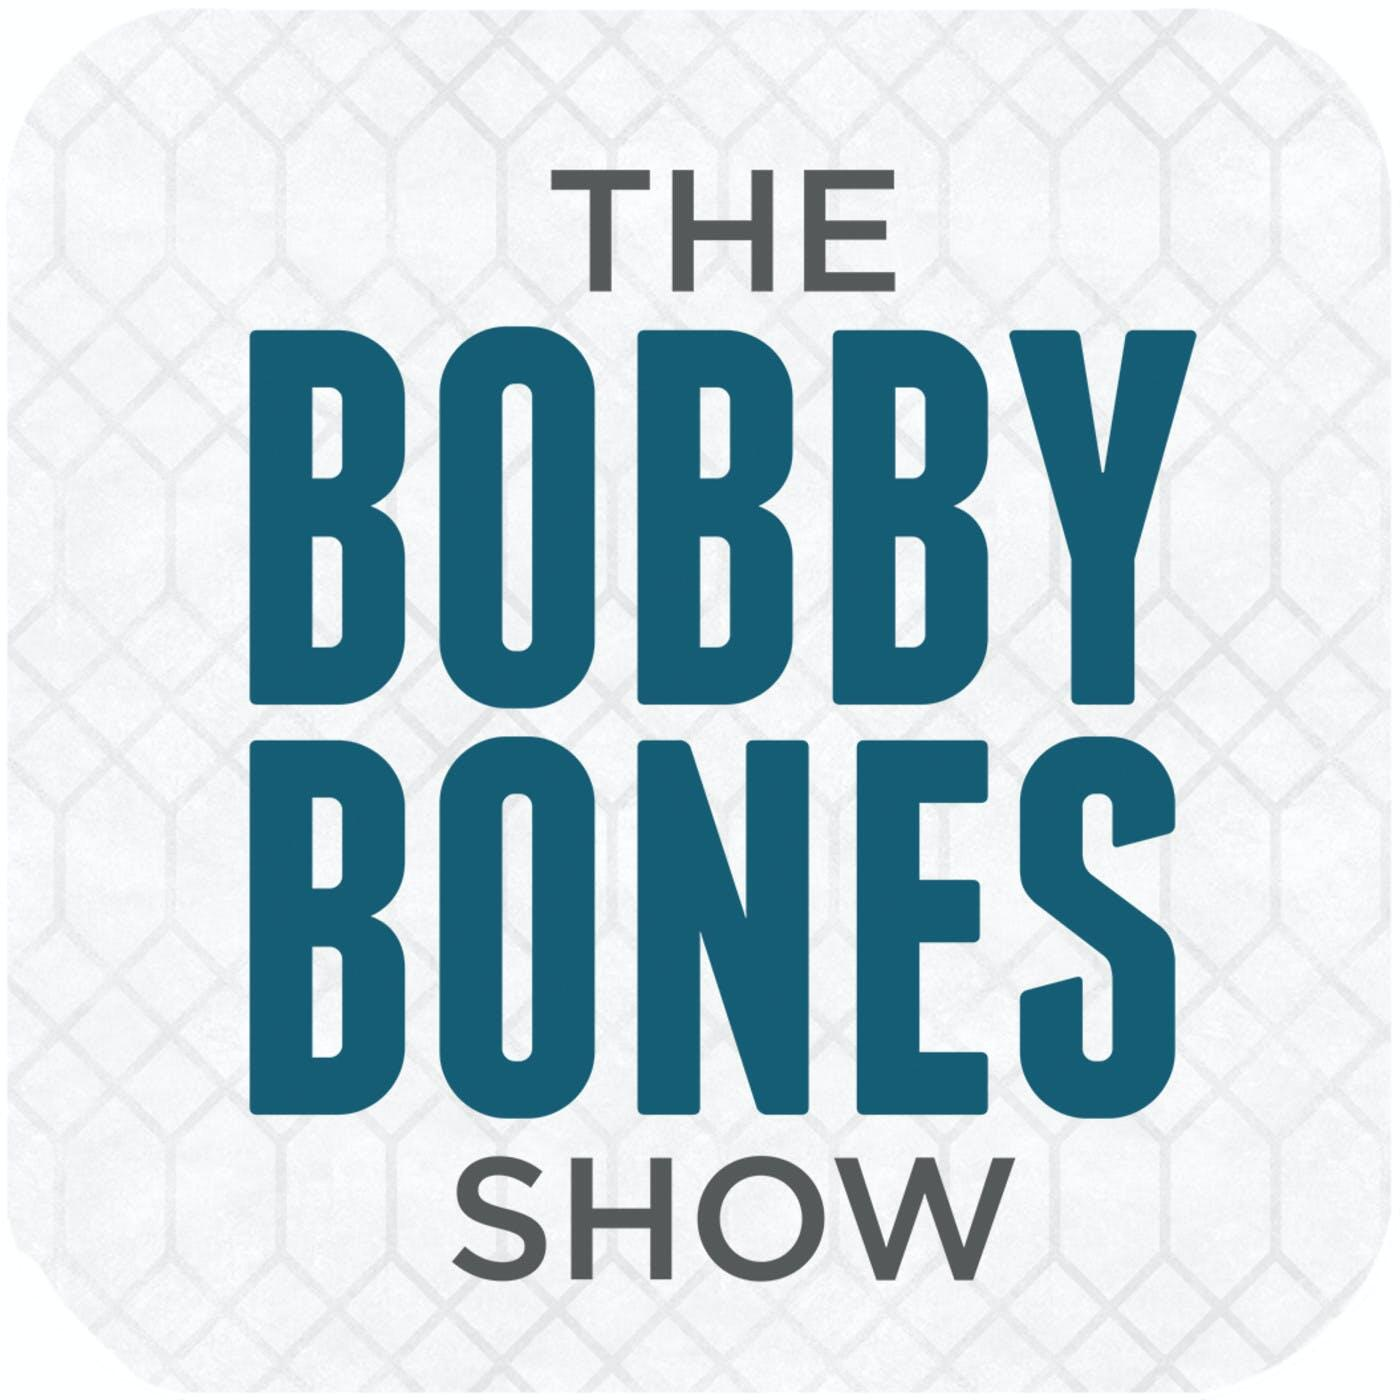 Listen Free to The Bobby Bones Show on iHeartRadio Podcasts